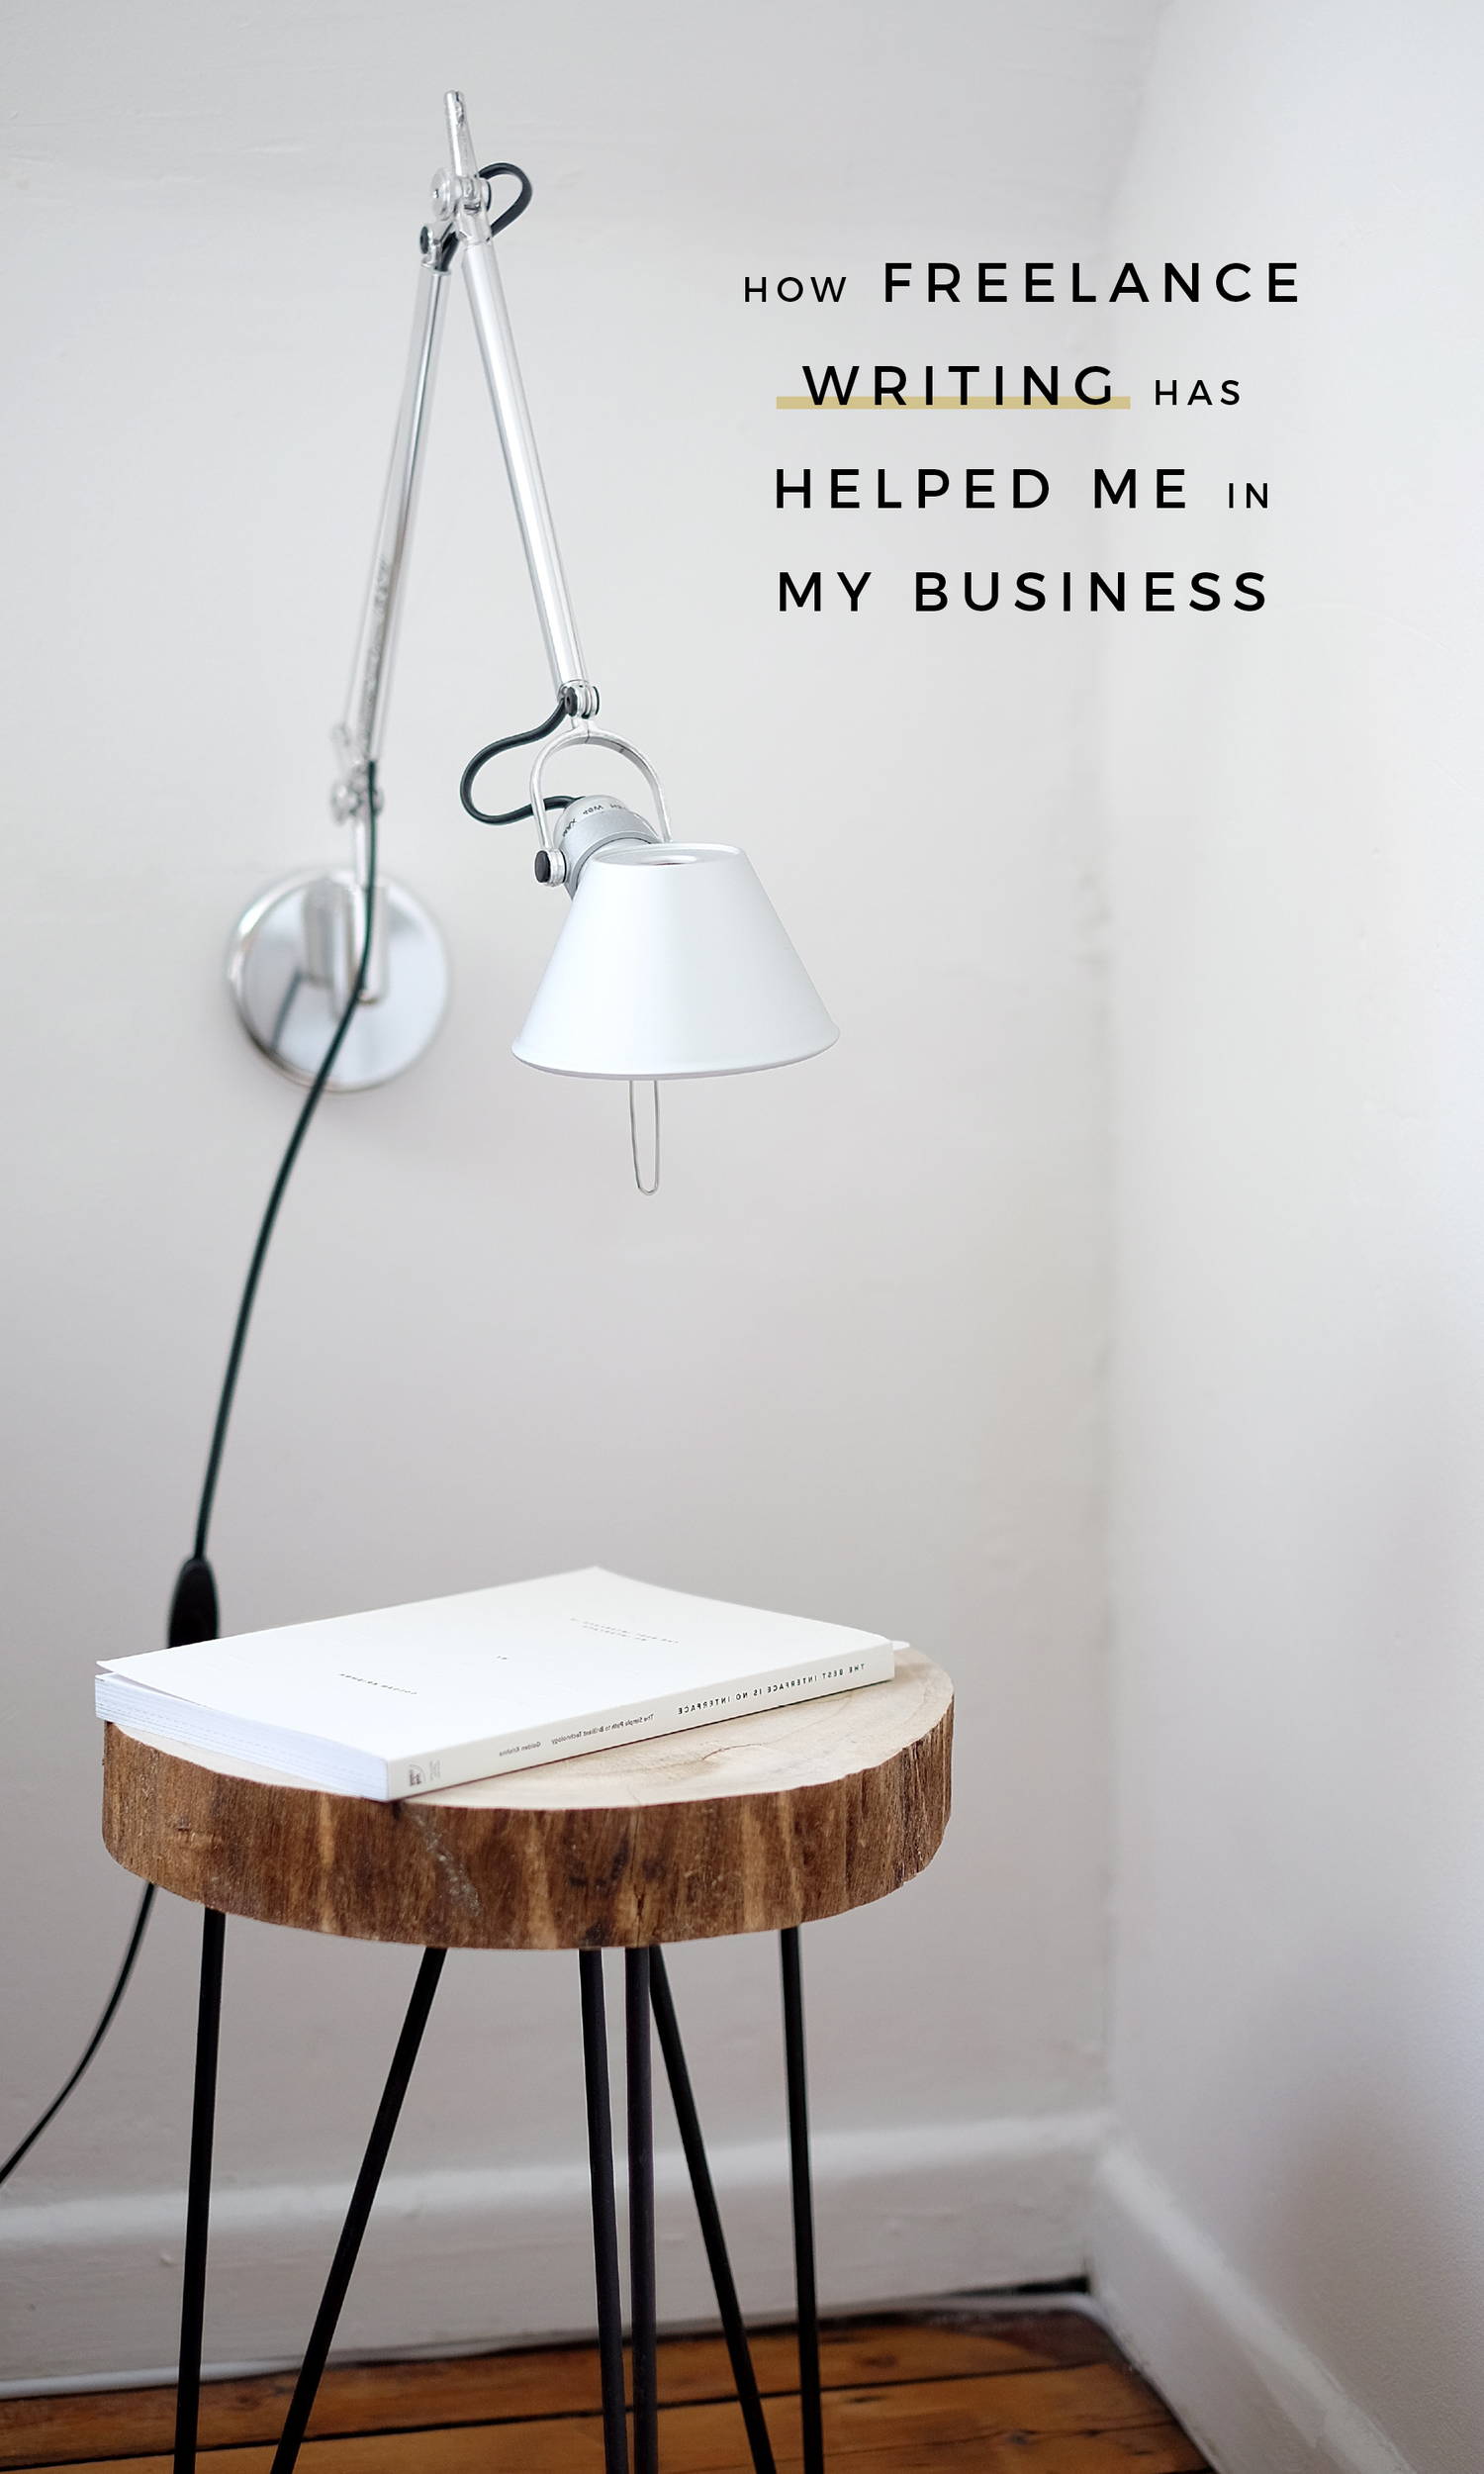 How Freelance Writing Has Helped Me In My Business